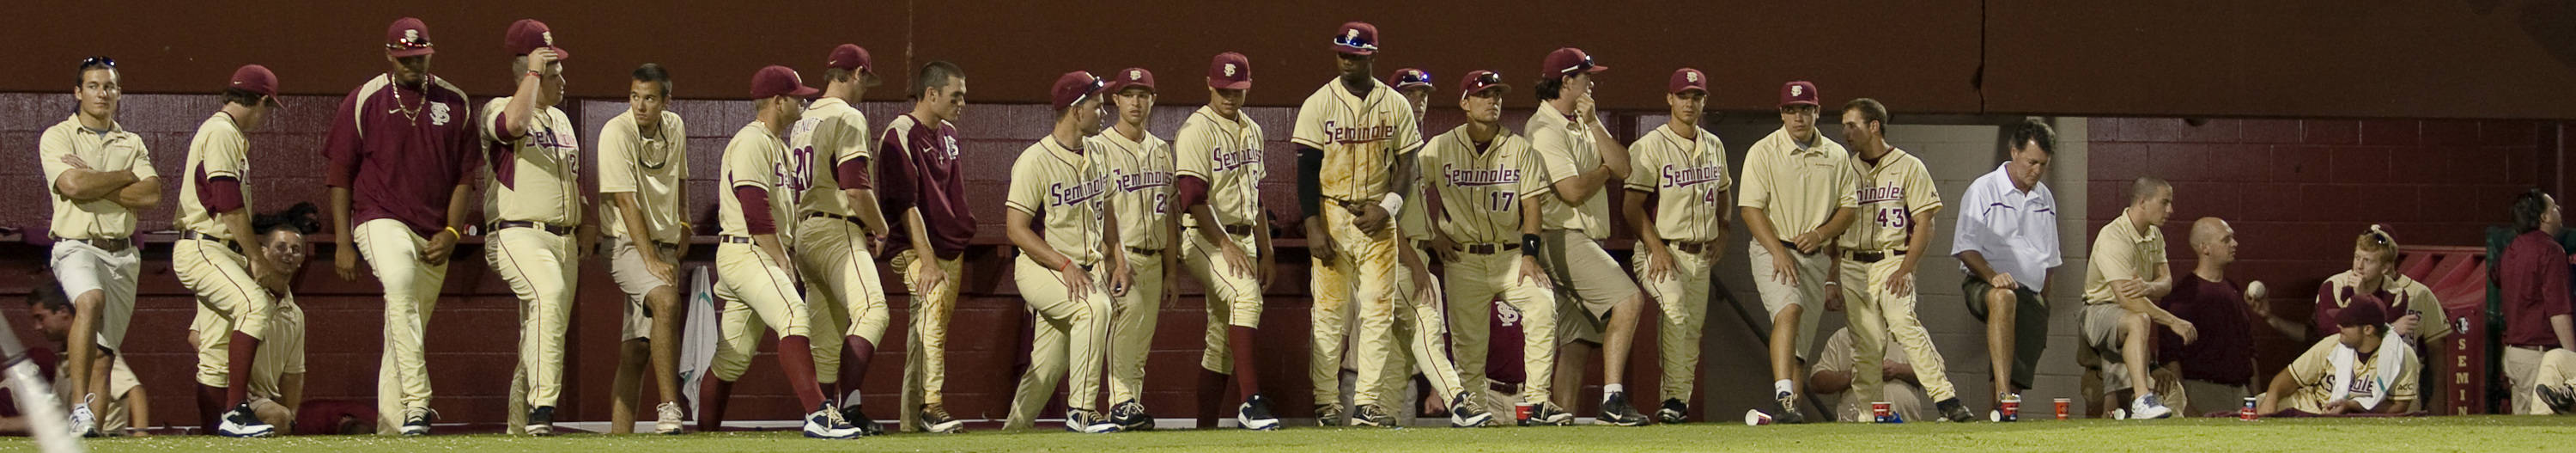 The Seminoles watch from the dugout during the final inning of the game.